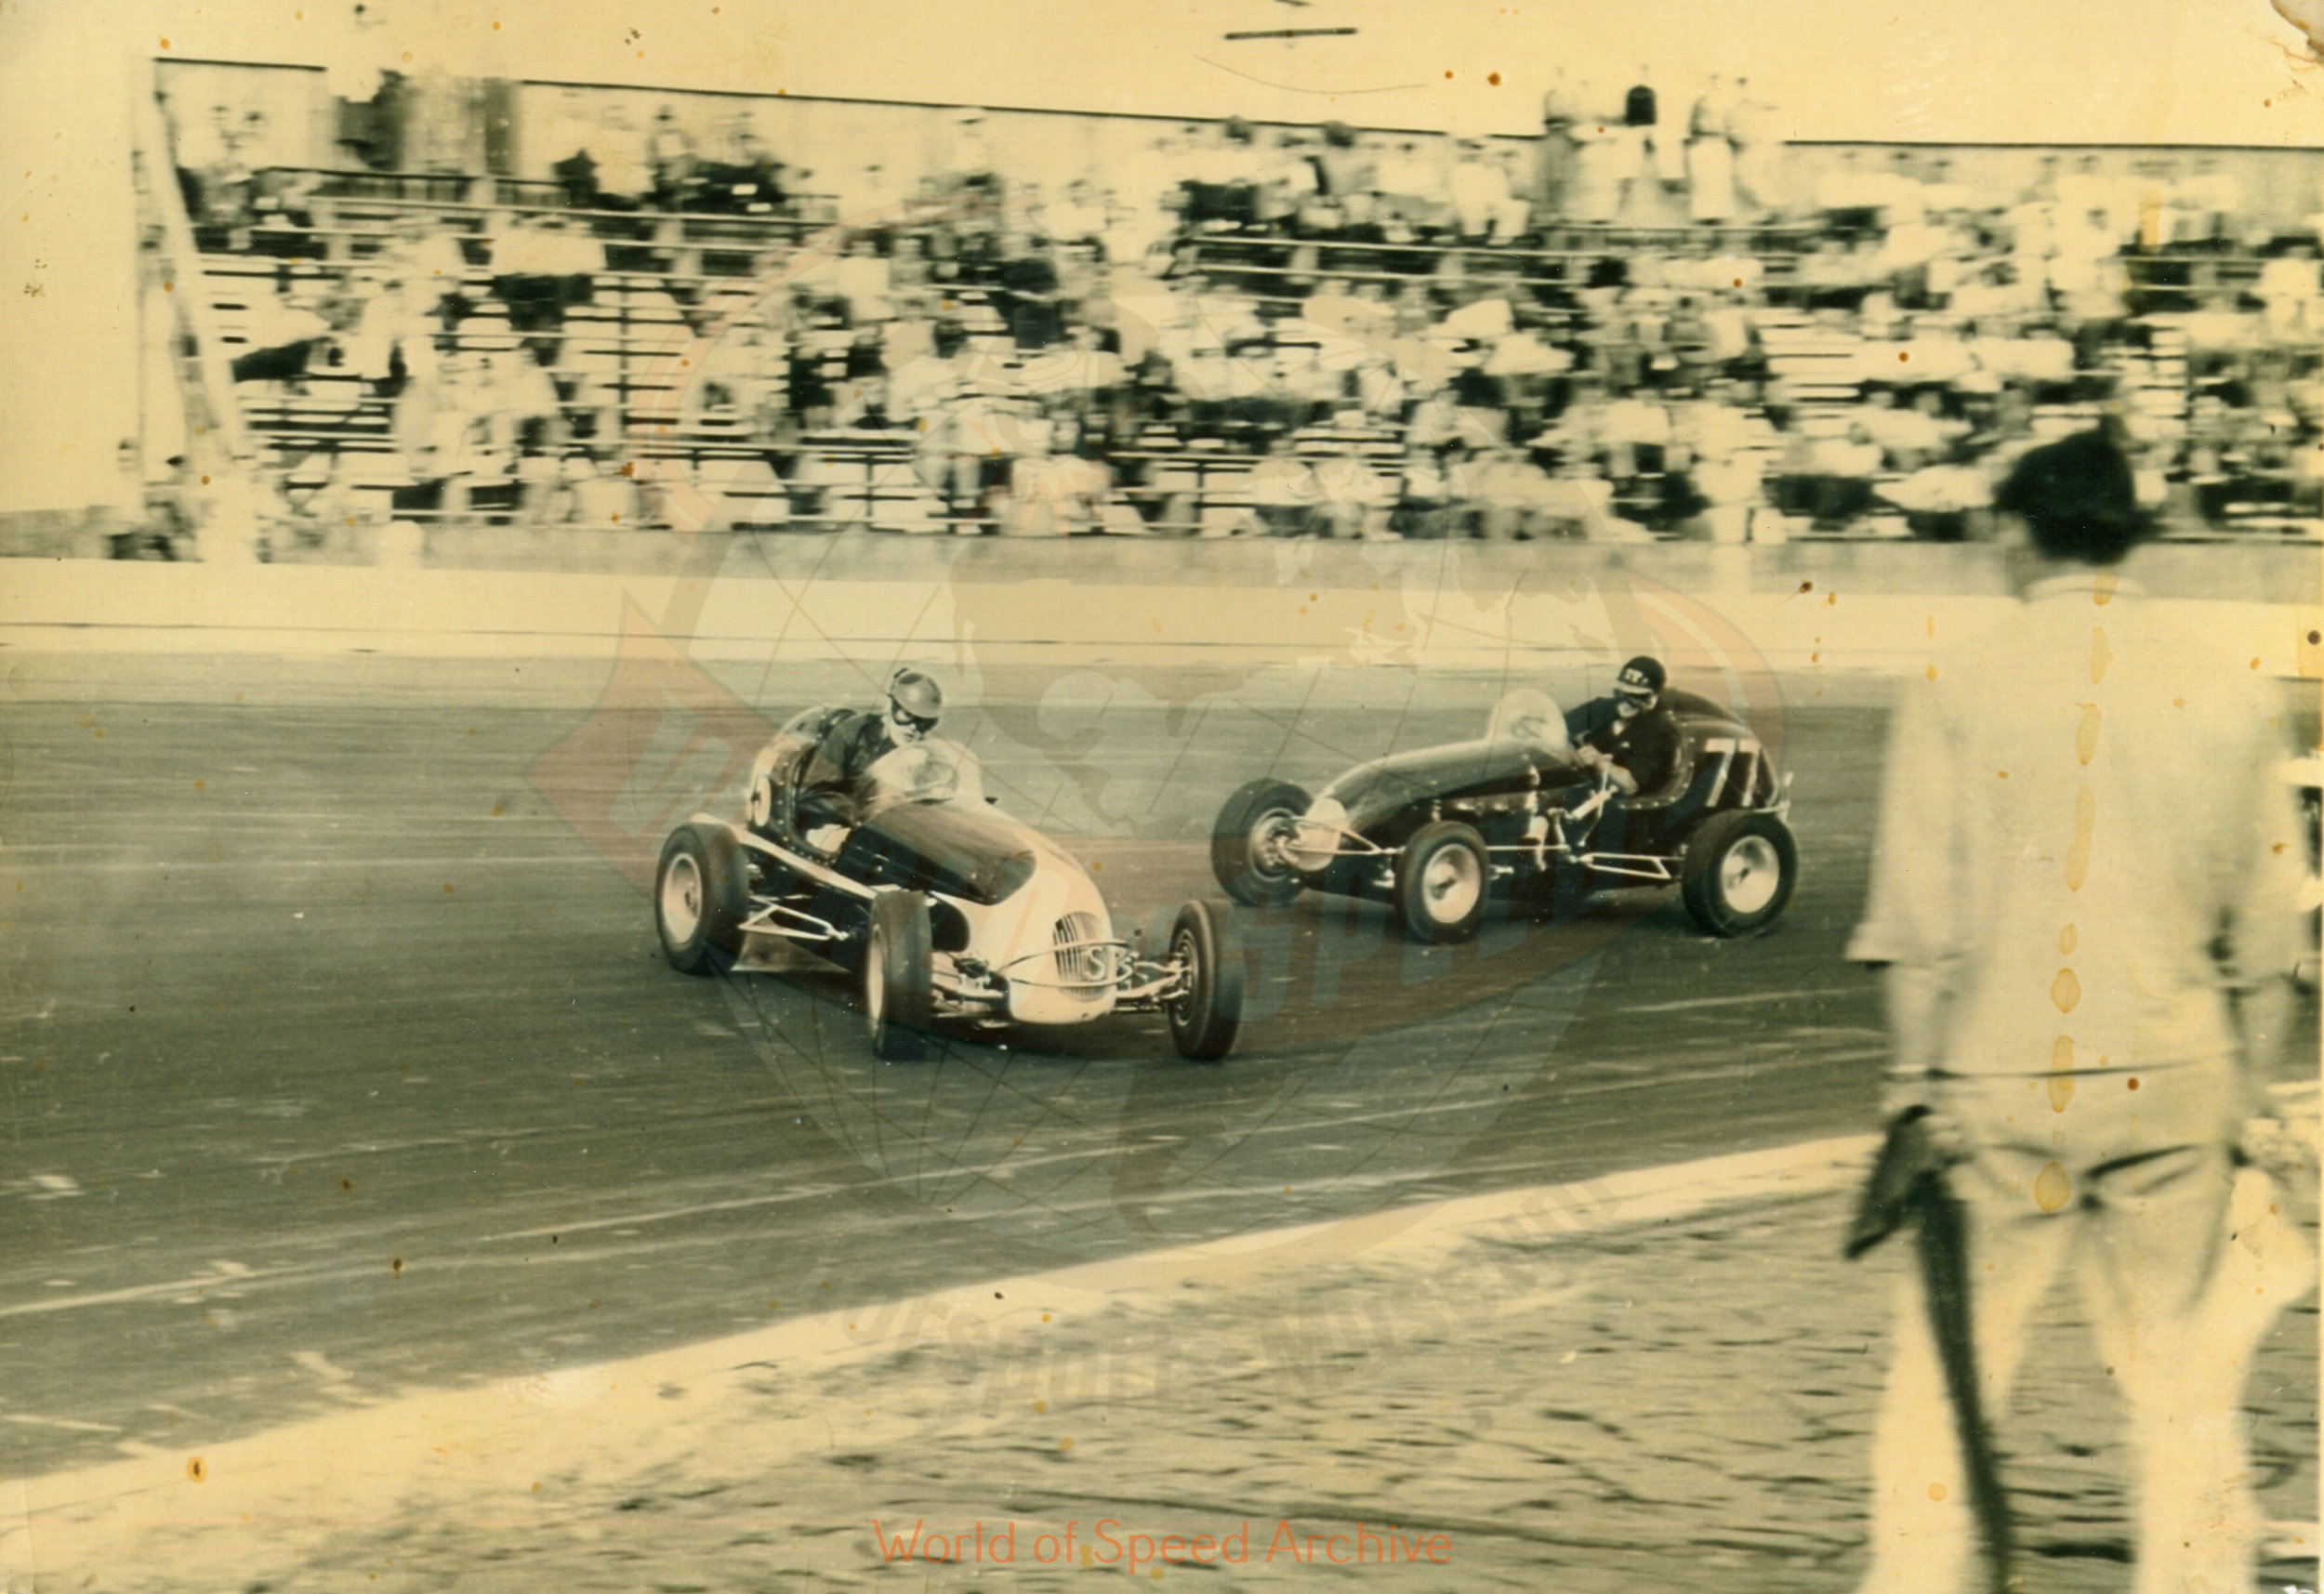 Hildick Photo Collection WOS#5072, BH017  Received submission:  #25 Bob Gregg (owner Clarence Smith); #77 Louie Sherman (owner John Snider); 1948